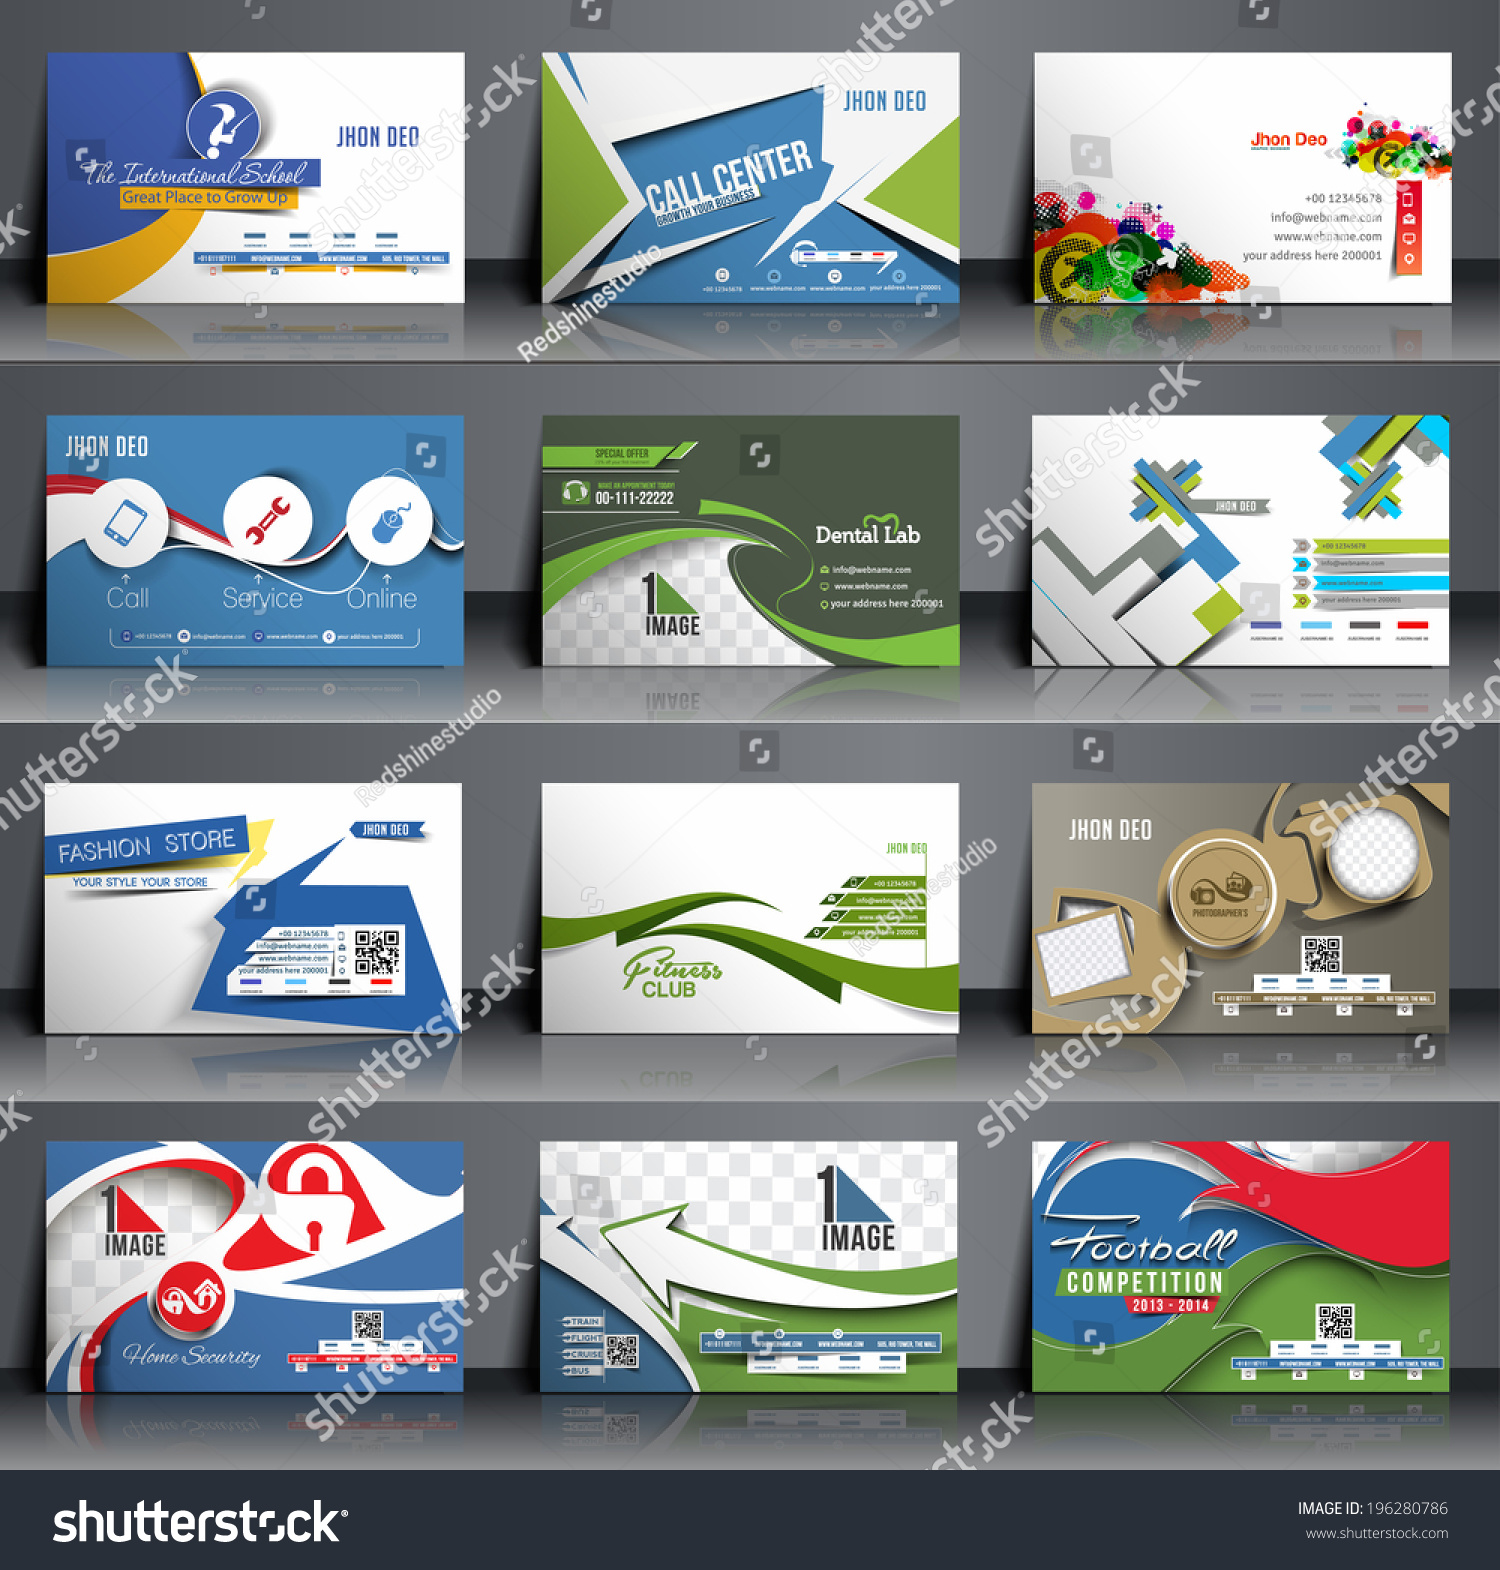 Mega Collection Business Card Template Design Stock Photo (Photo ...